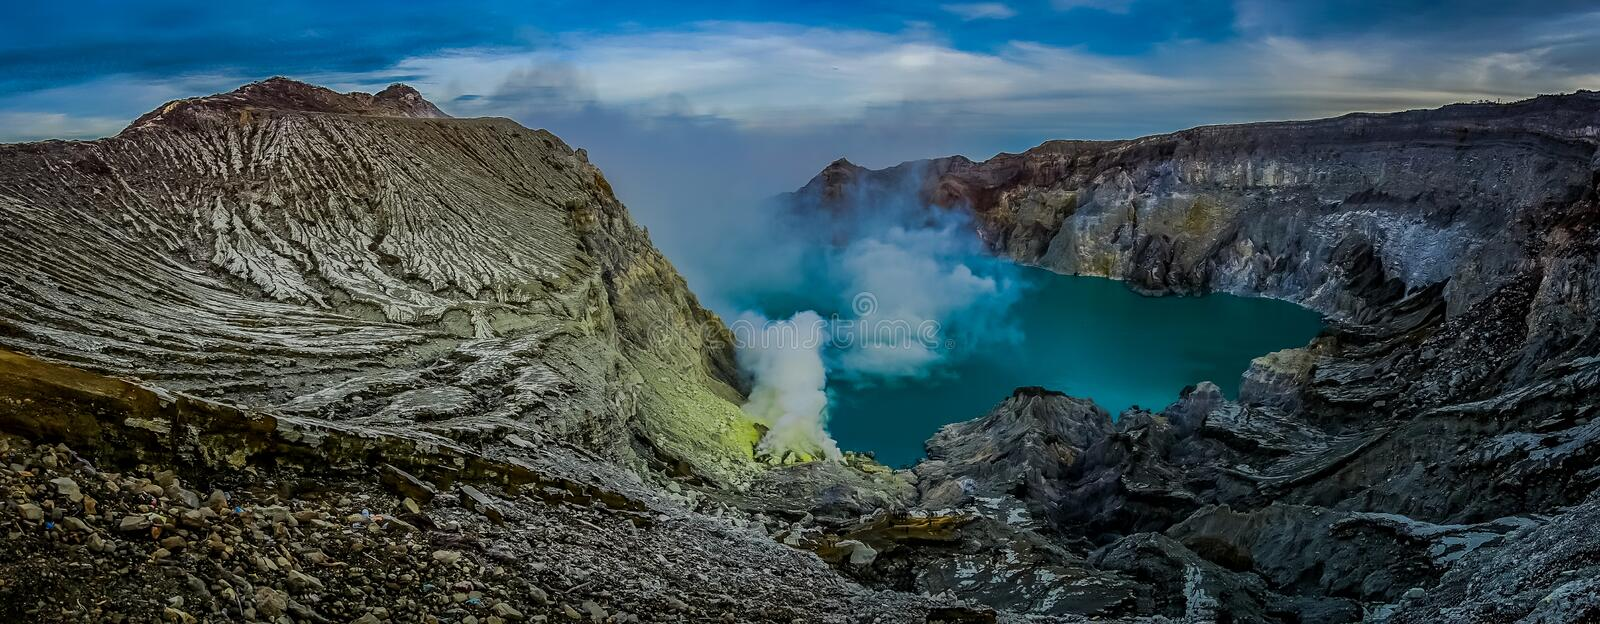 KAWEH IJEN, INDONESIA: Spectacular overview of volcanic crater lake with rough mountain cliffs, great nature concept royalty free stock photography